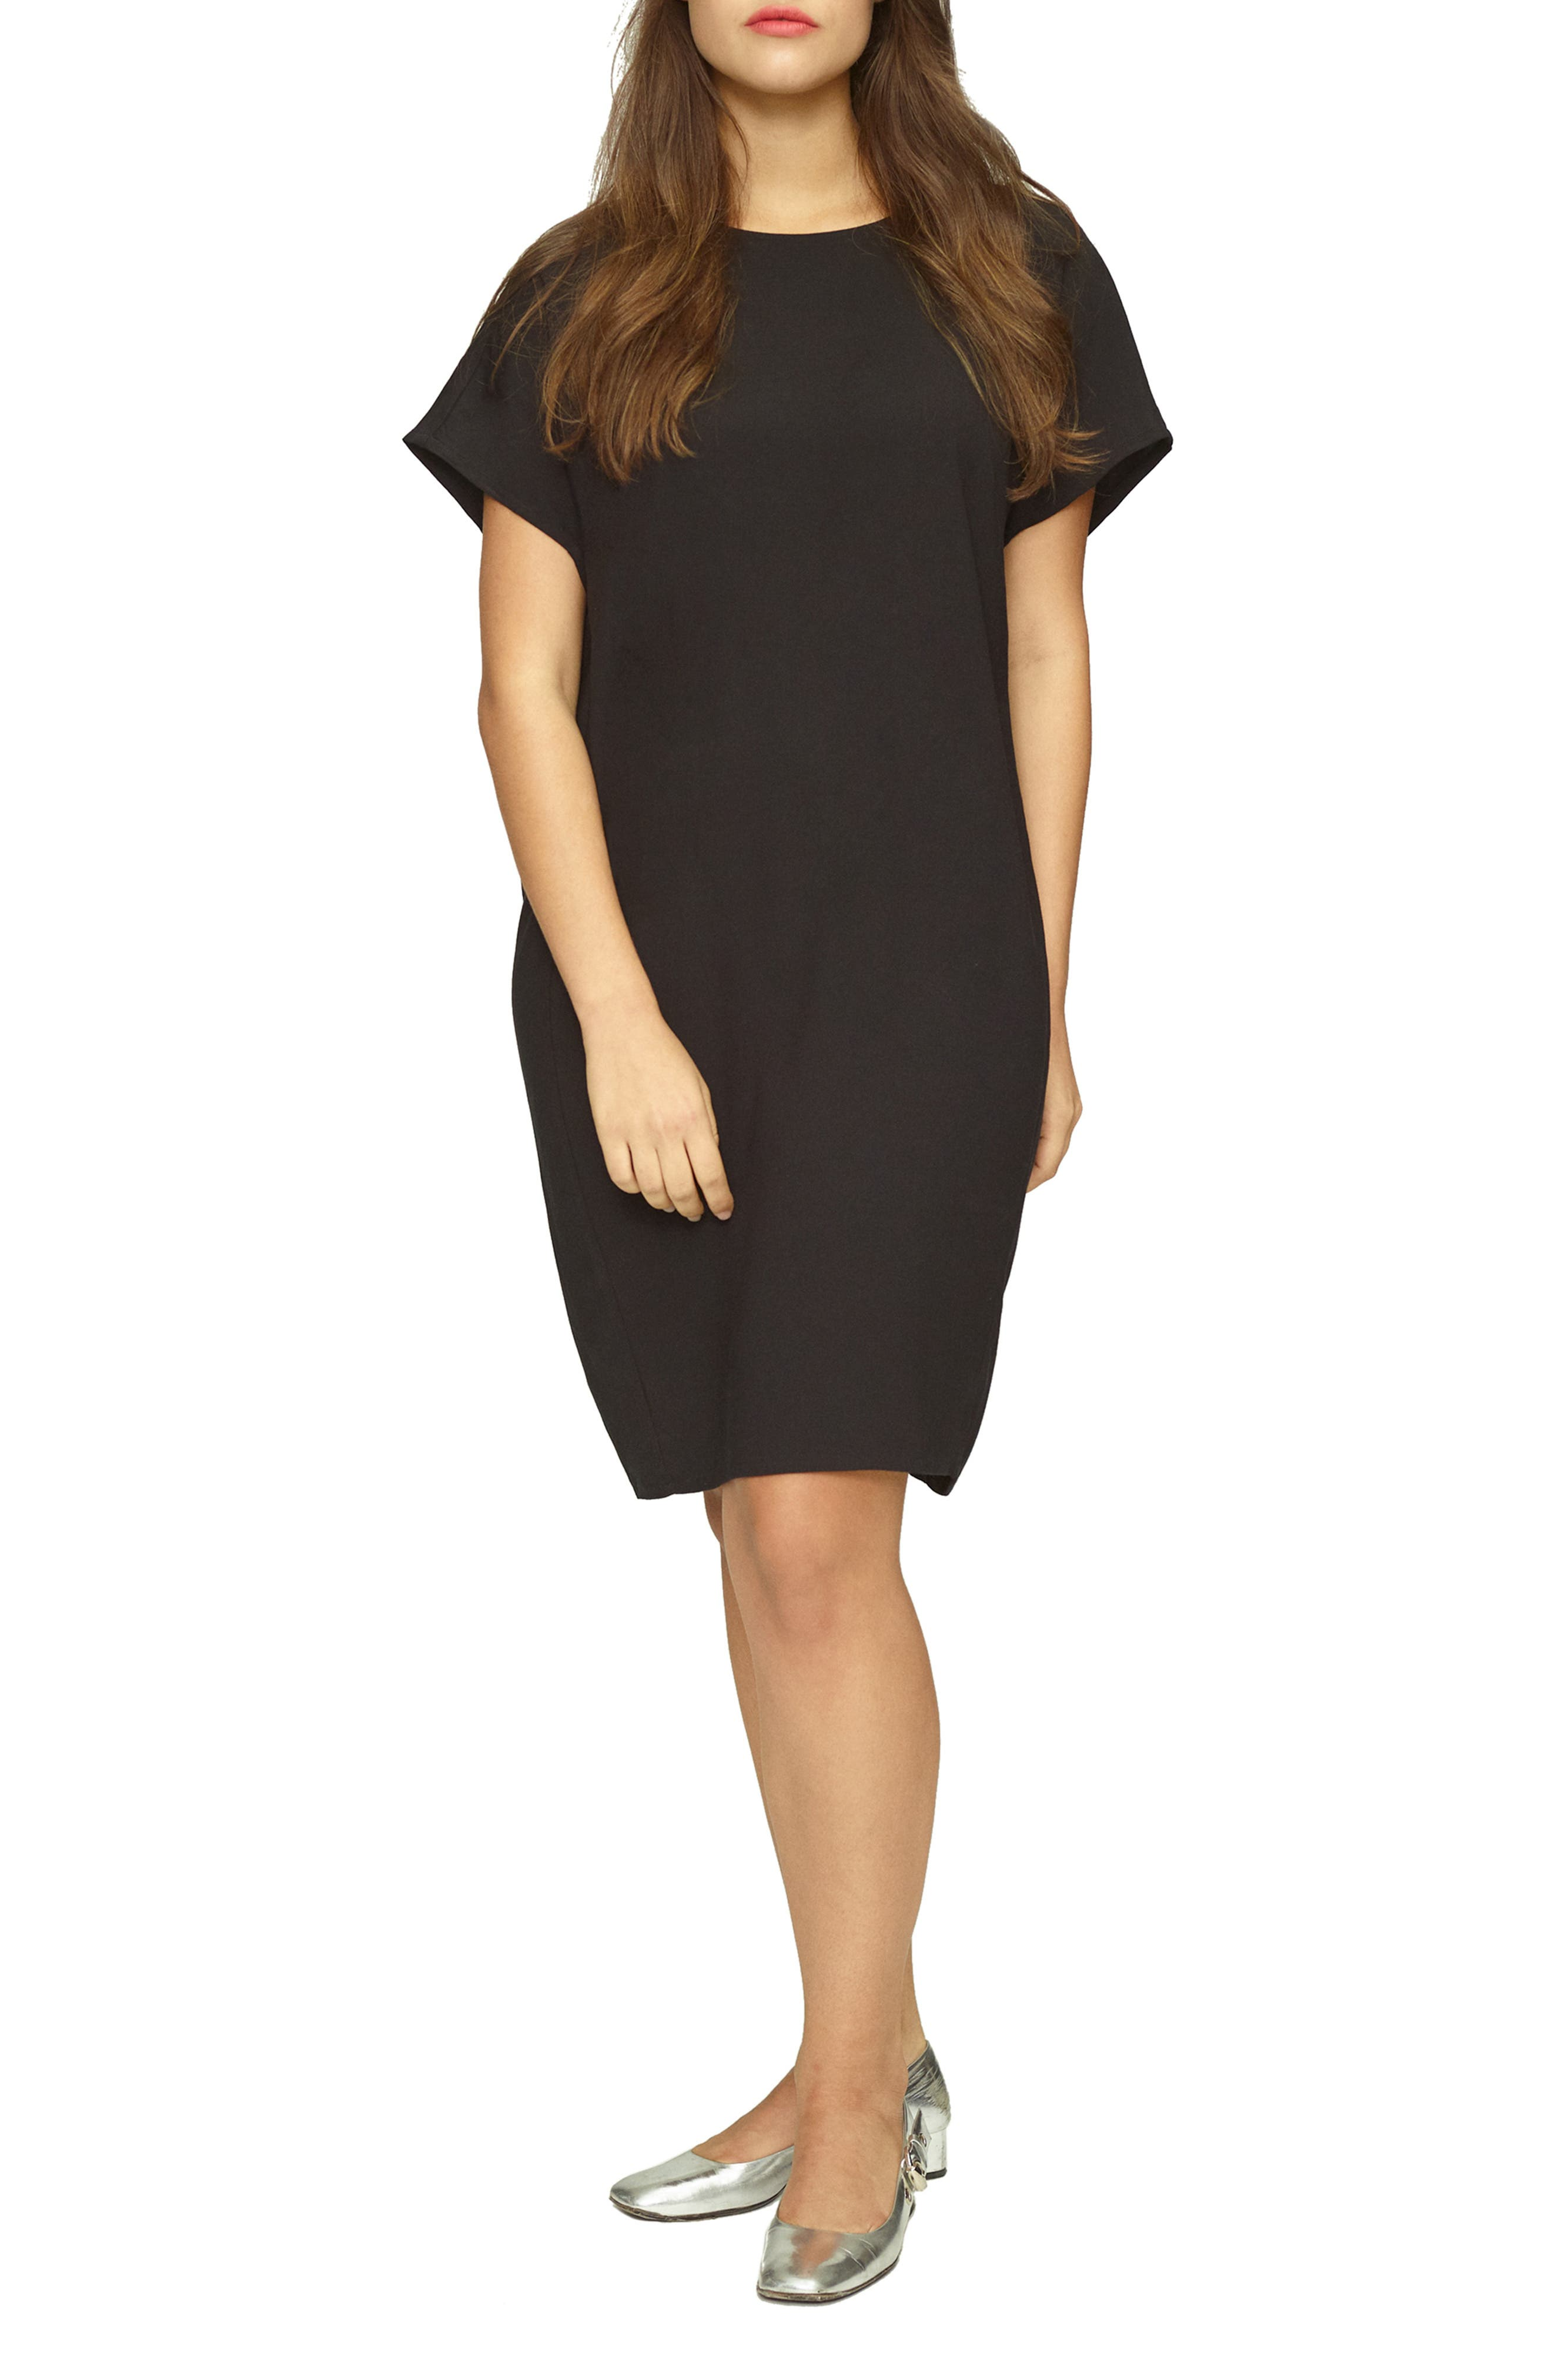 UNIVERSAL STANDARD Luxe Twill Sheath Dress, Main, color, 001